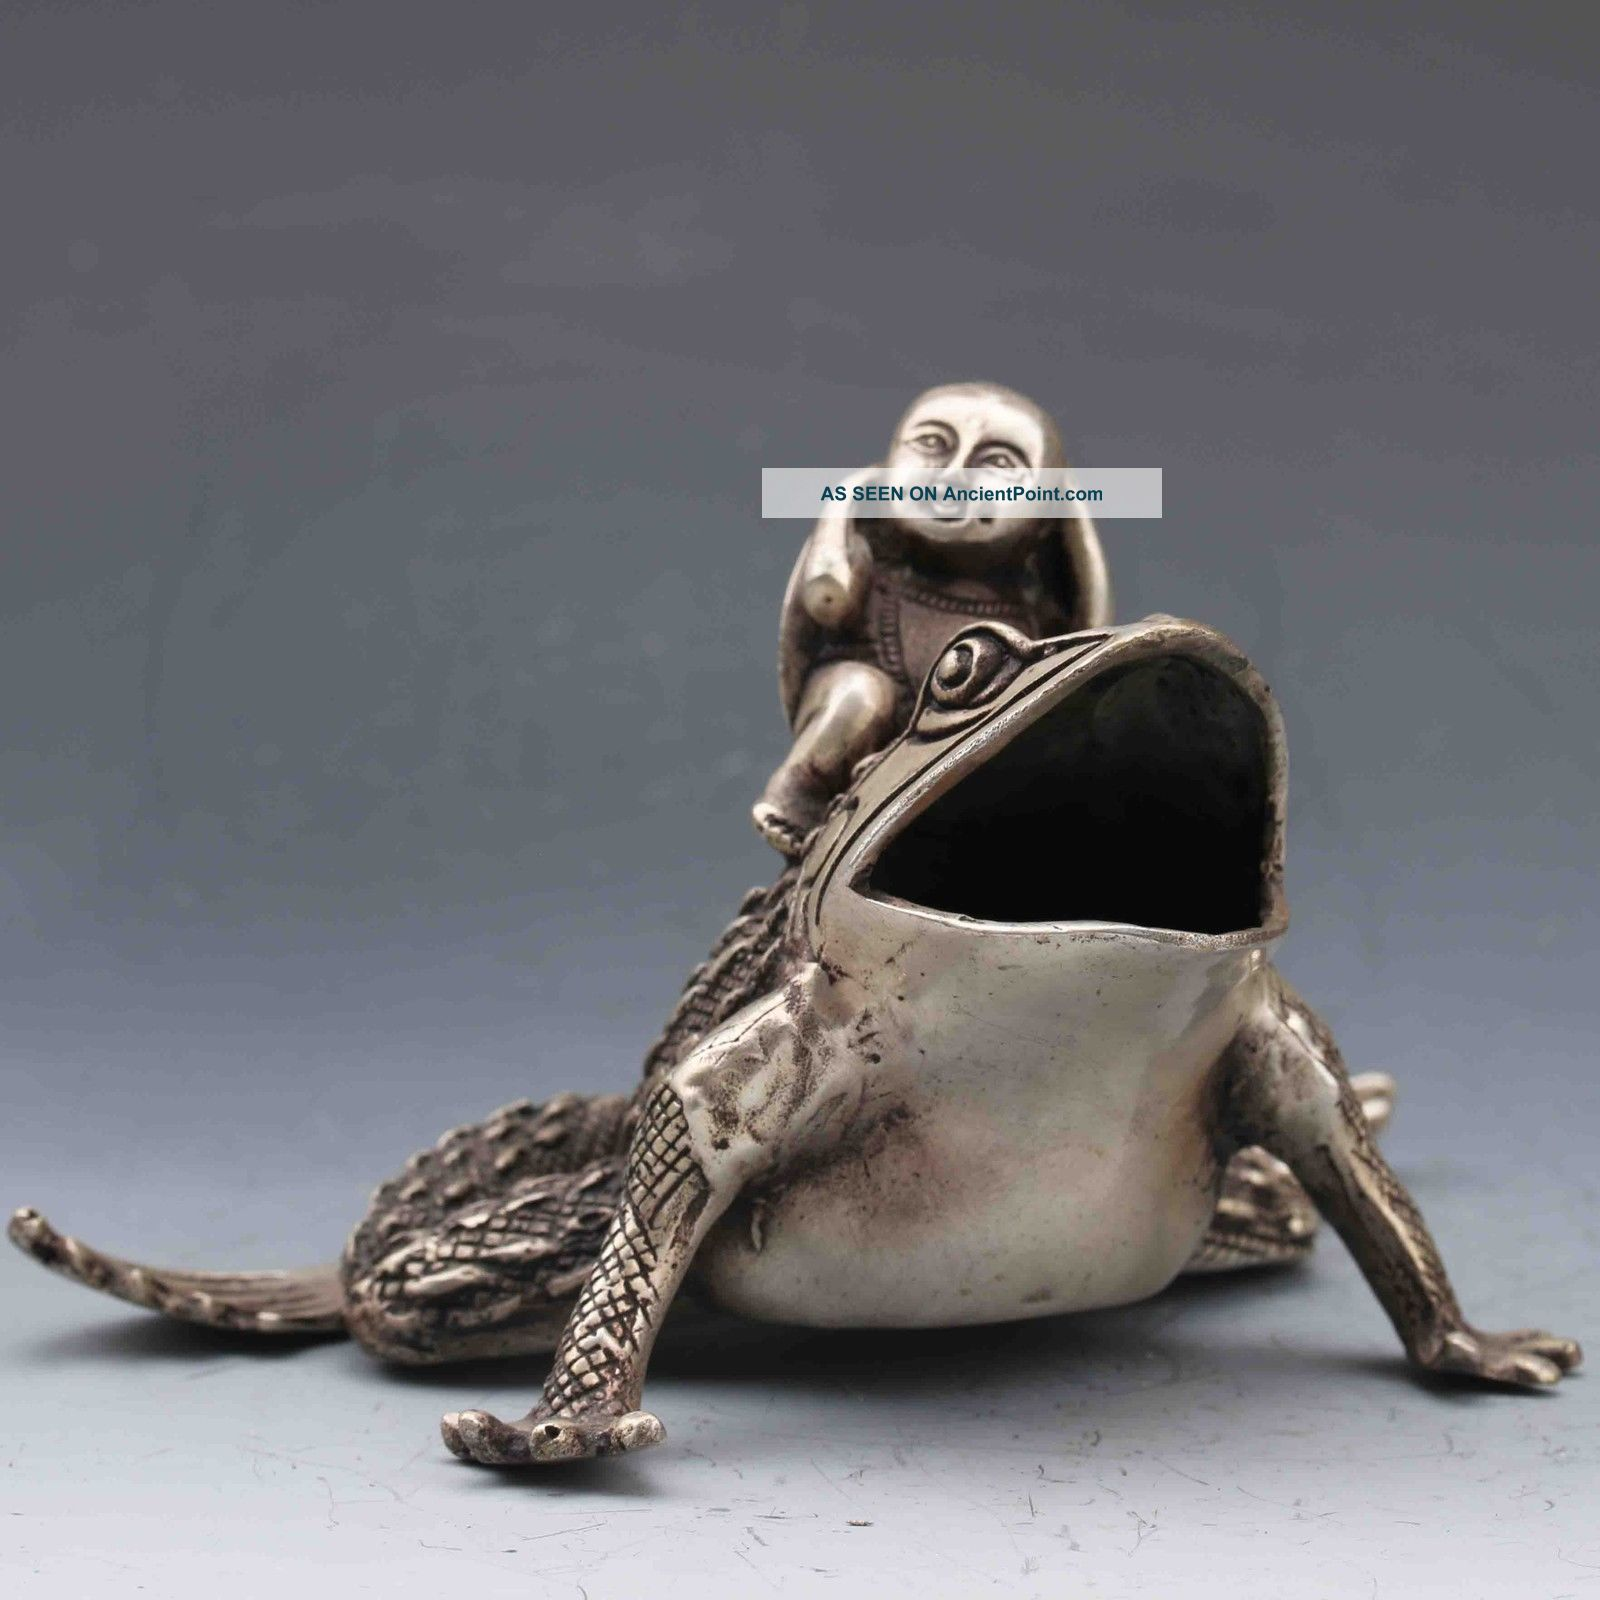 Tibeten Silver Handwork Carved Kid&toad Statue G654 Other Antique Chinese Statues photo